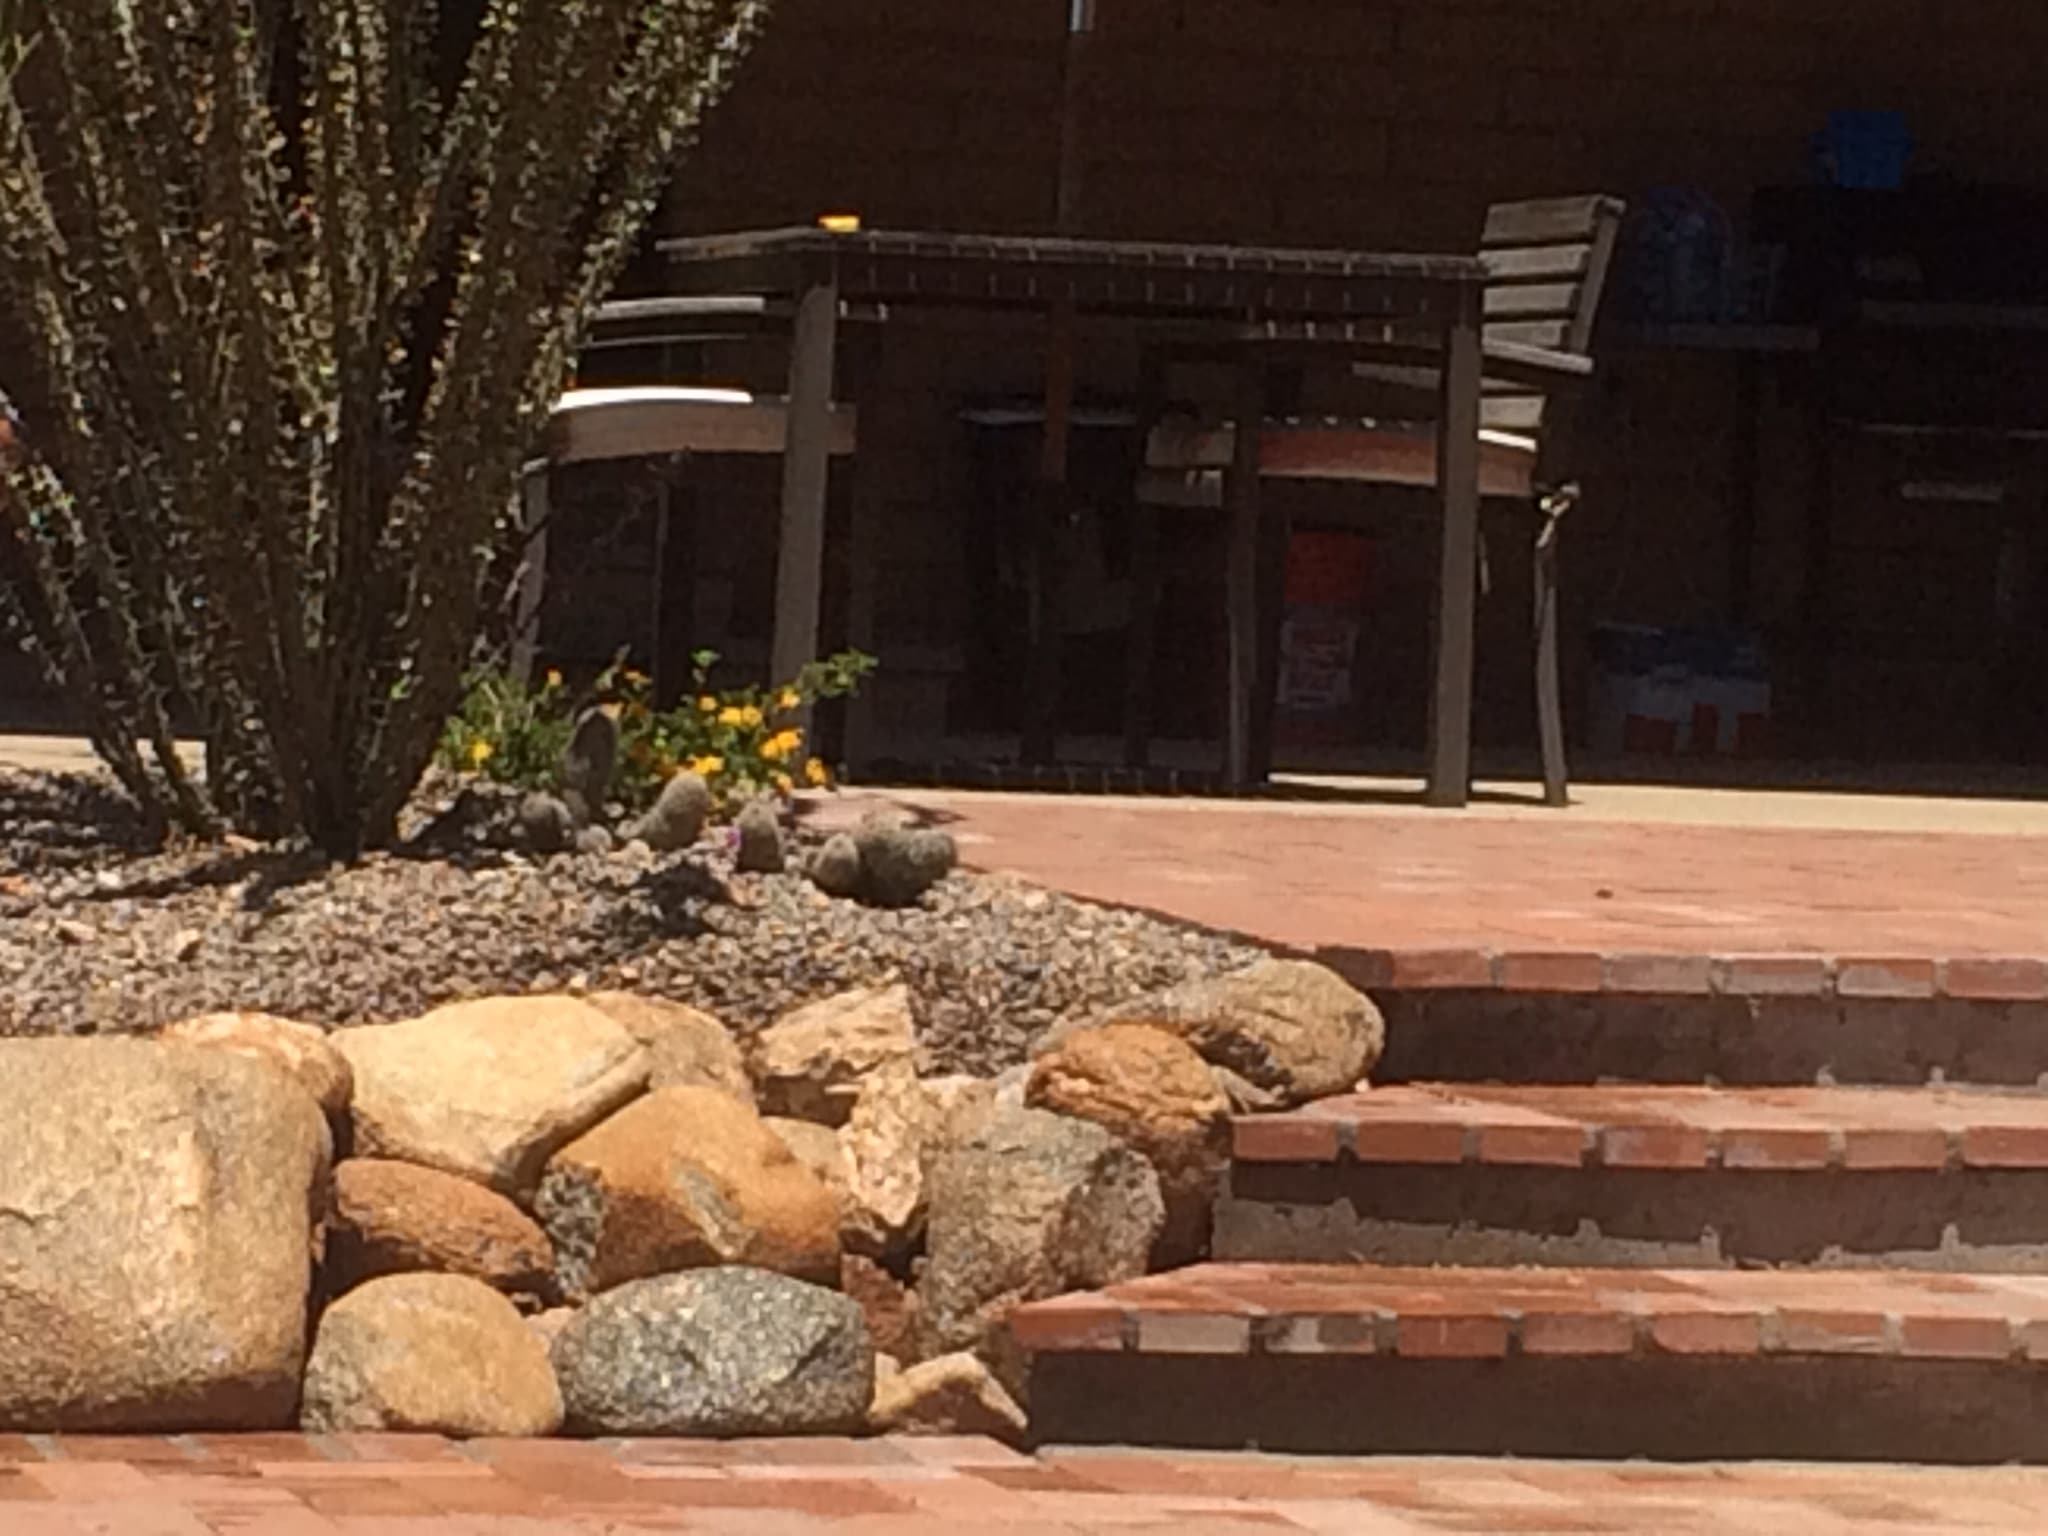 Landscaping Contractor in Tucson - Arizona Landshapes LLC